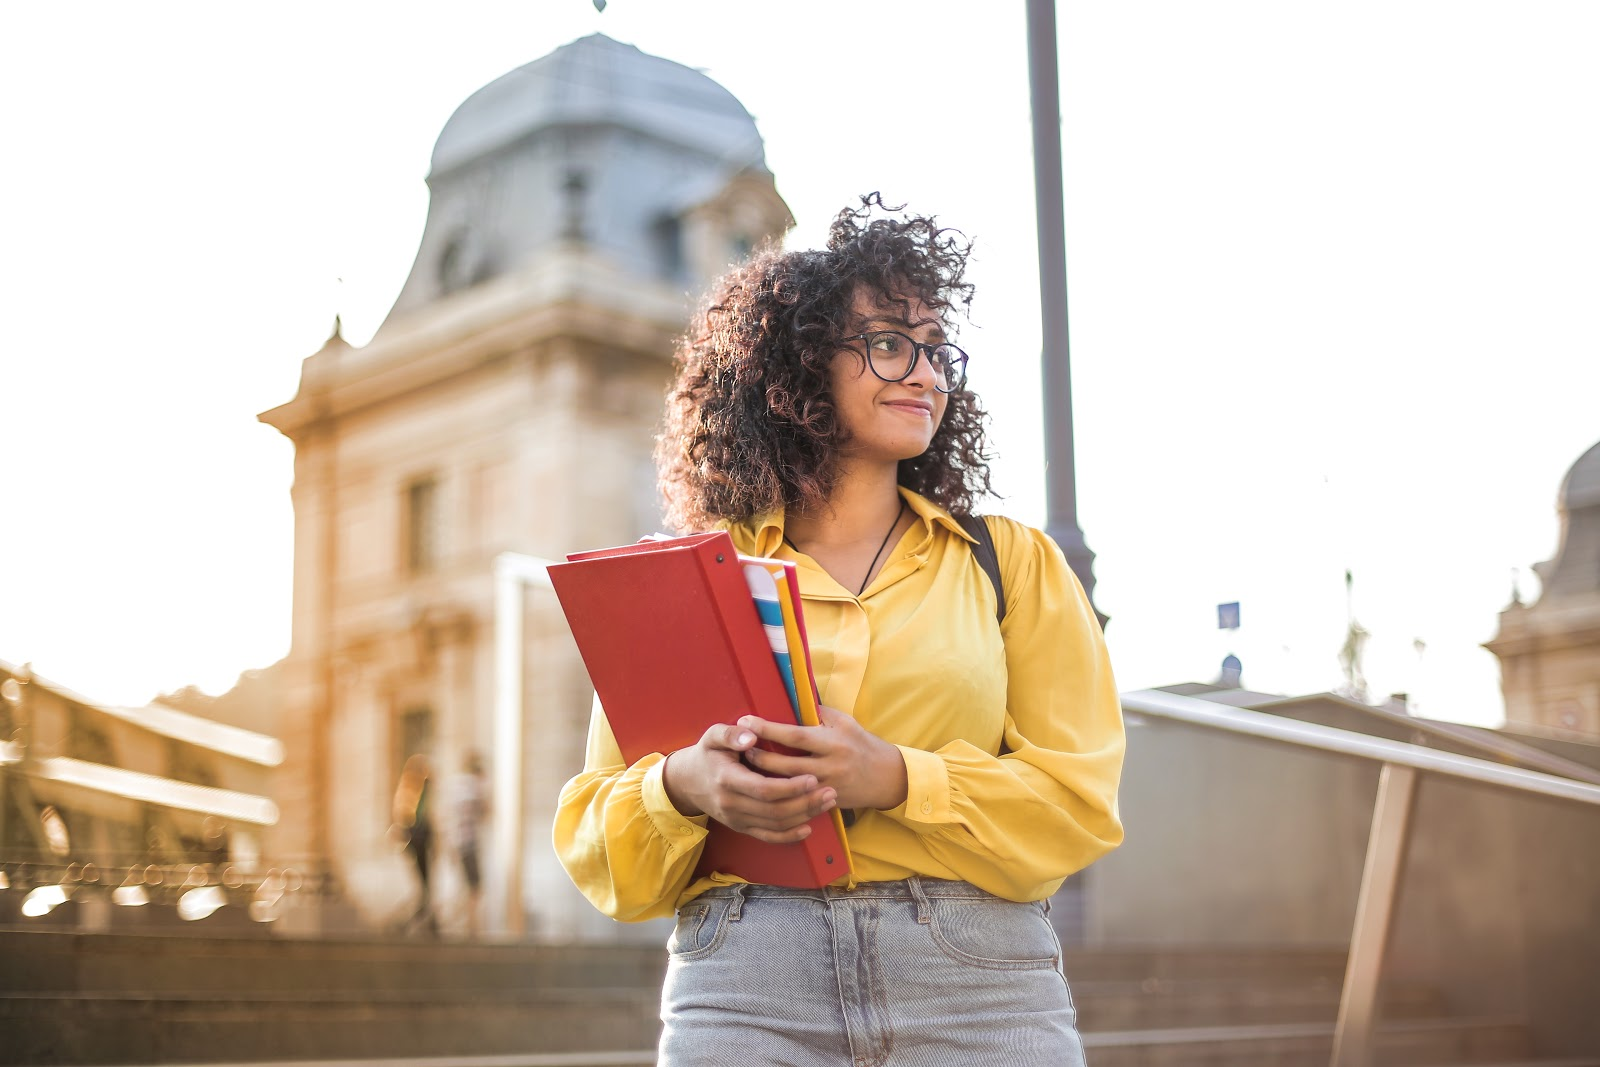 Woman in yellow shirt holding binder and books